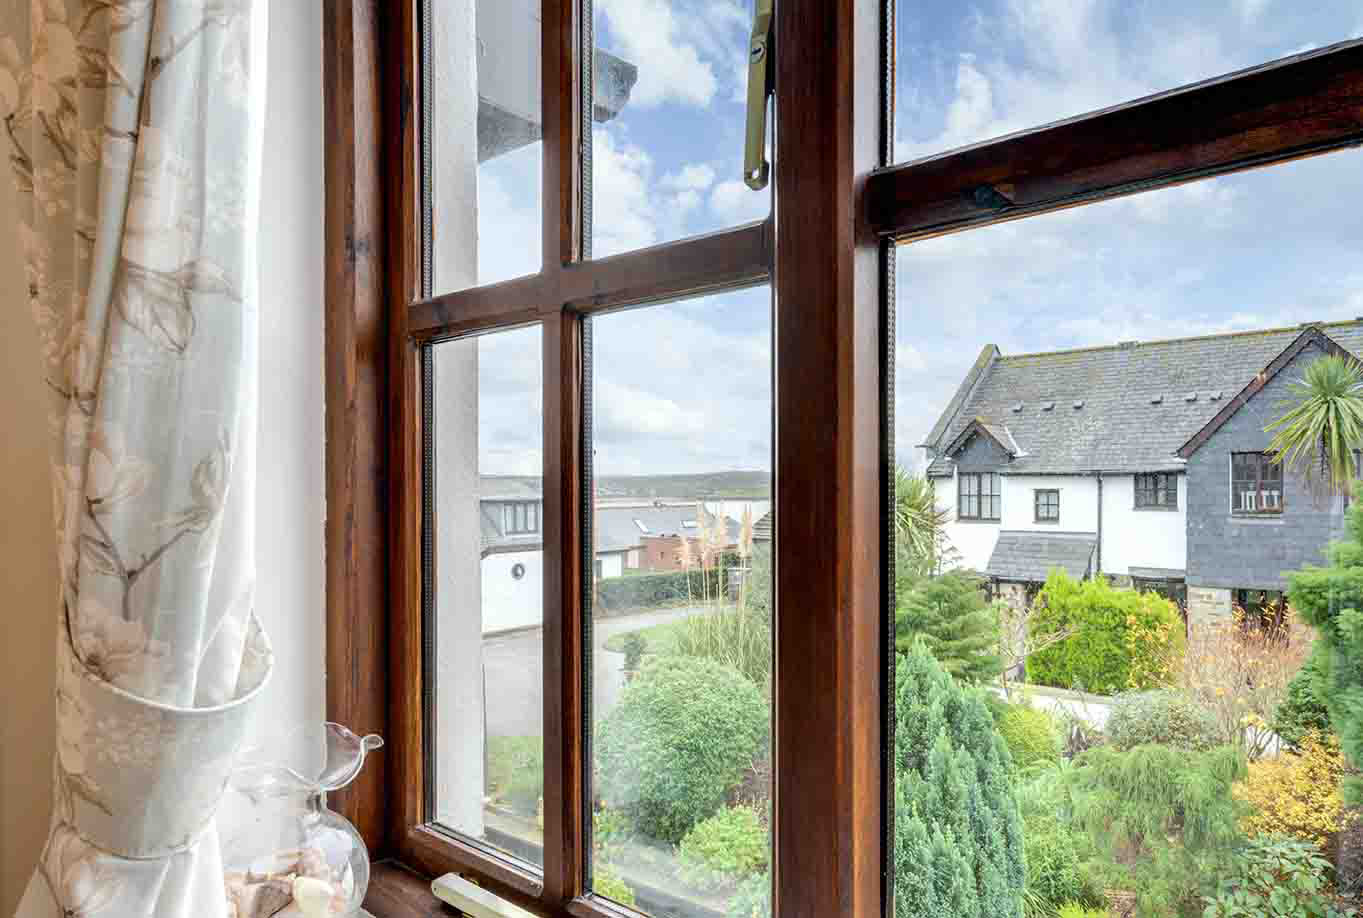 Ship Shape cosy holiday cottage in seaside harbour of Padstow window view.jpg